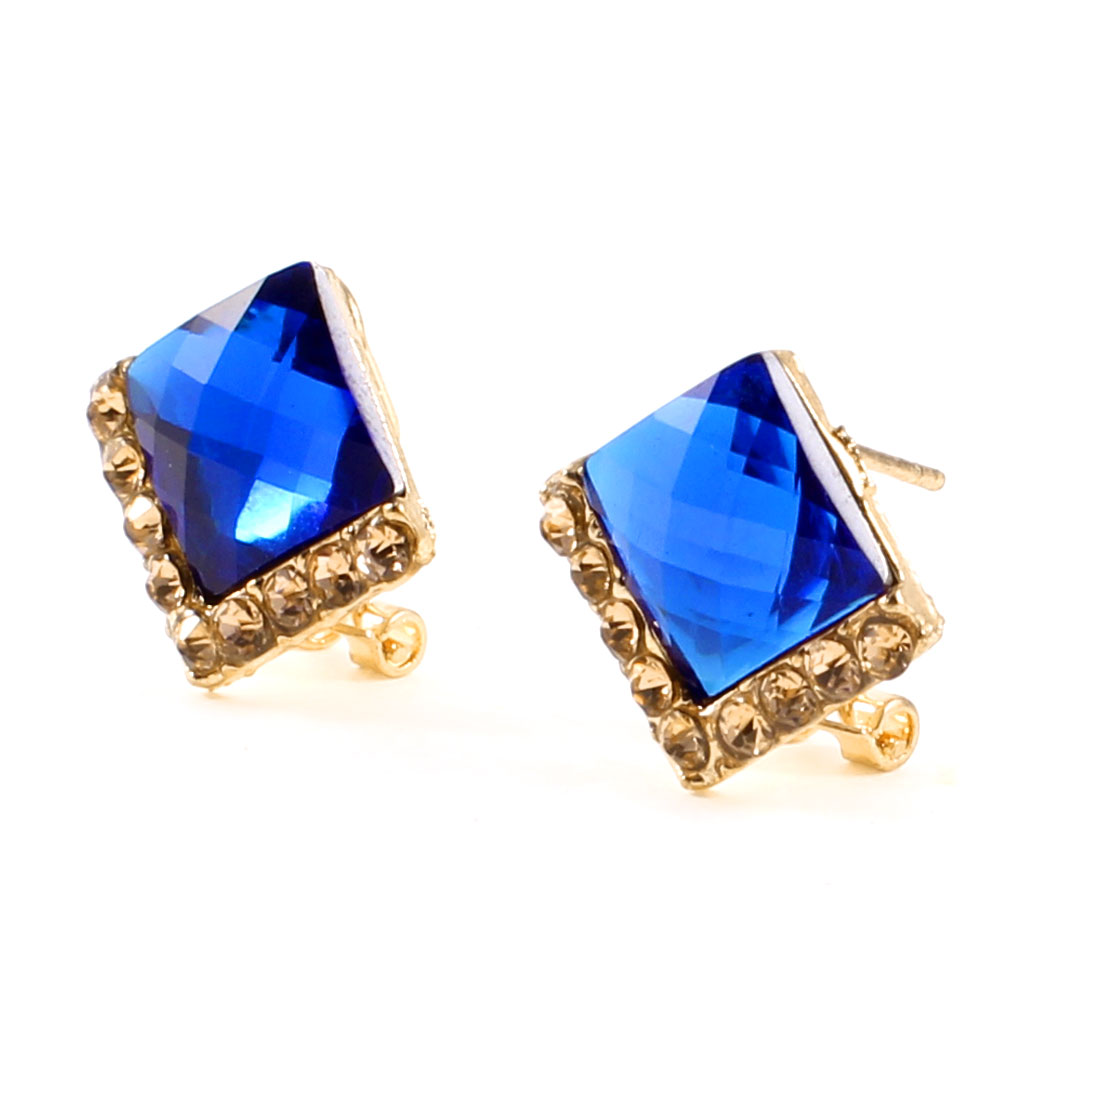 Ladies Gold Tone Blue Square Plastic Beads Decor Clip Earrings Stud Pair